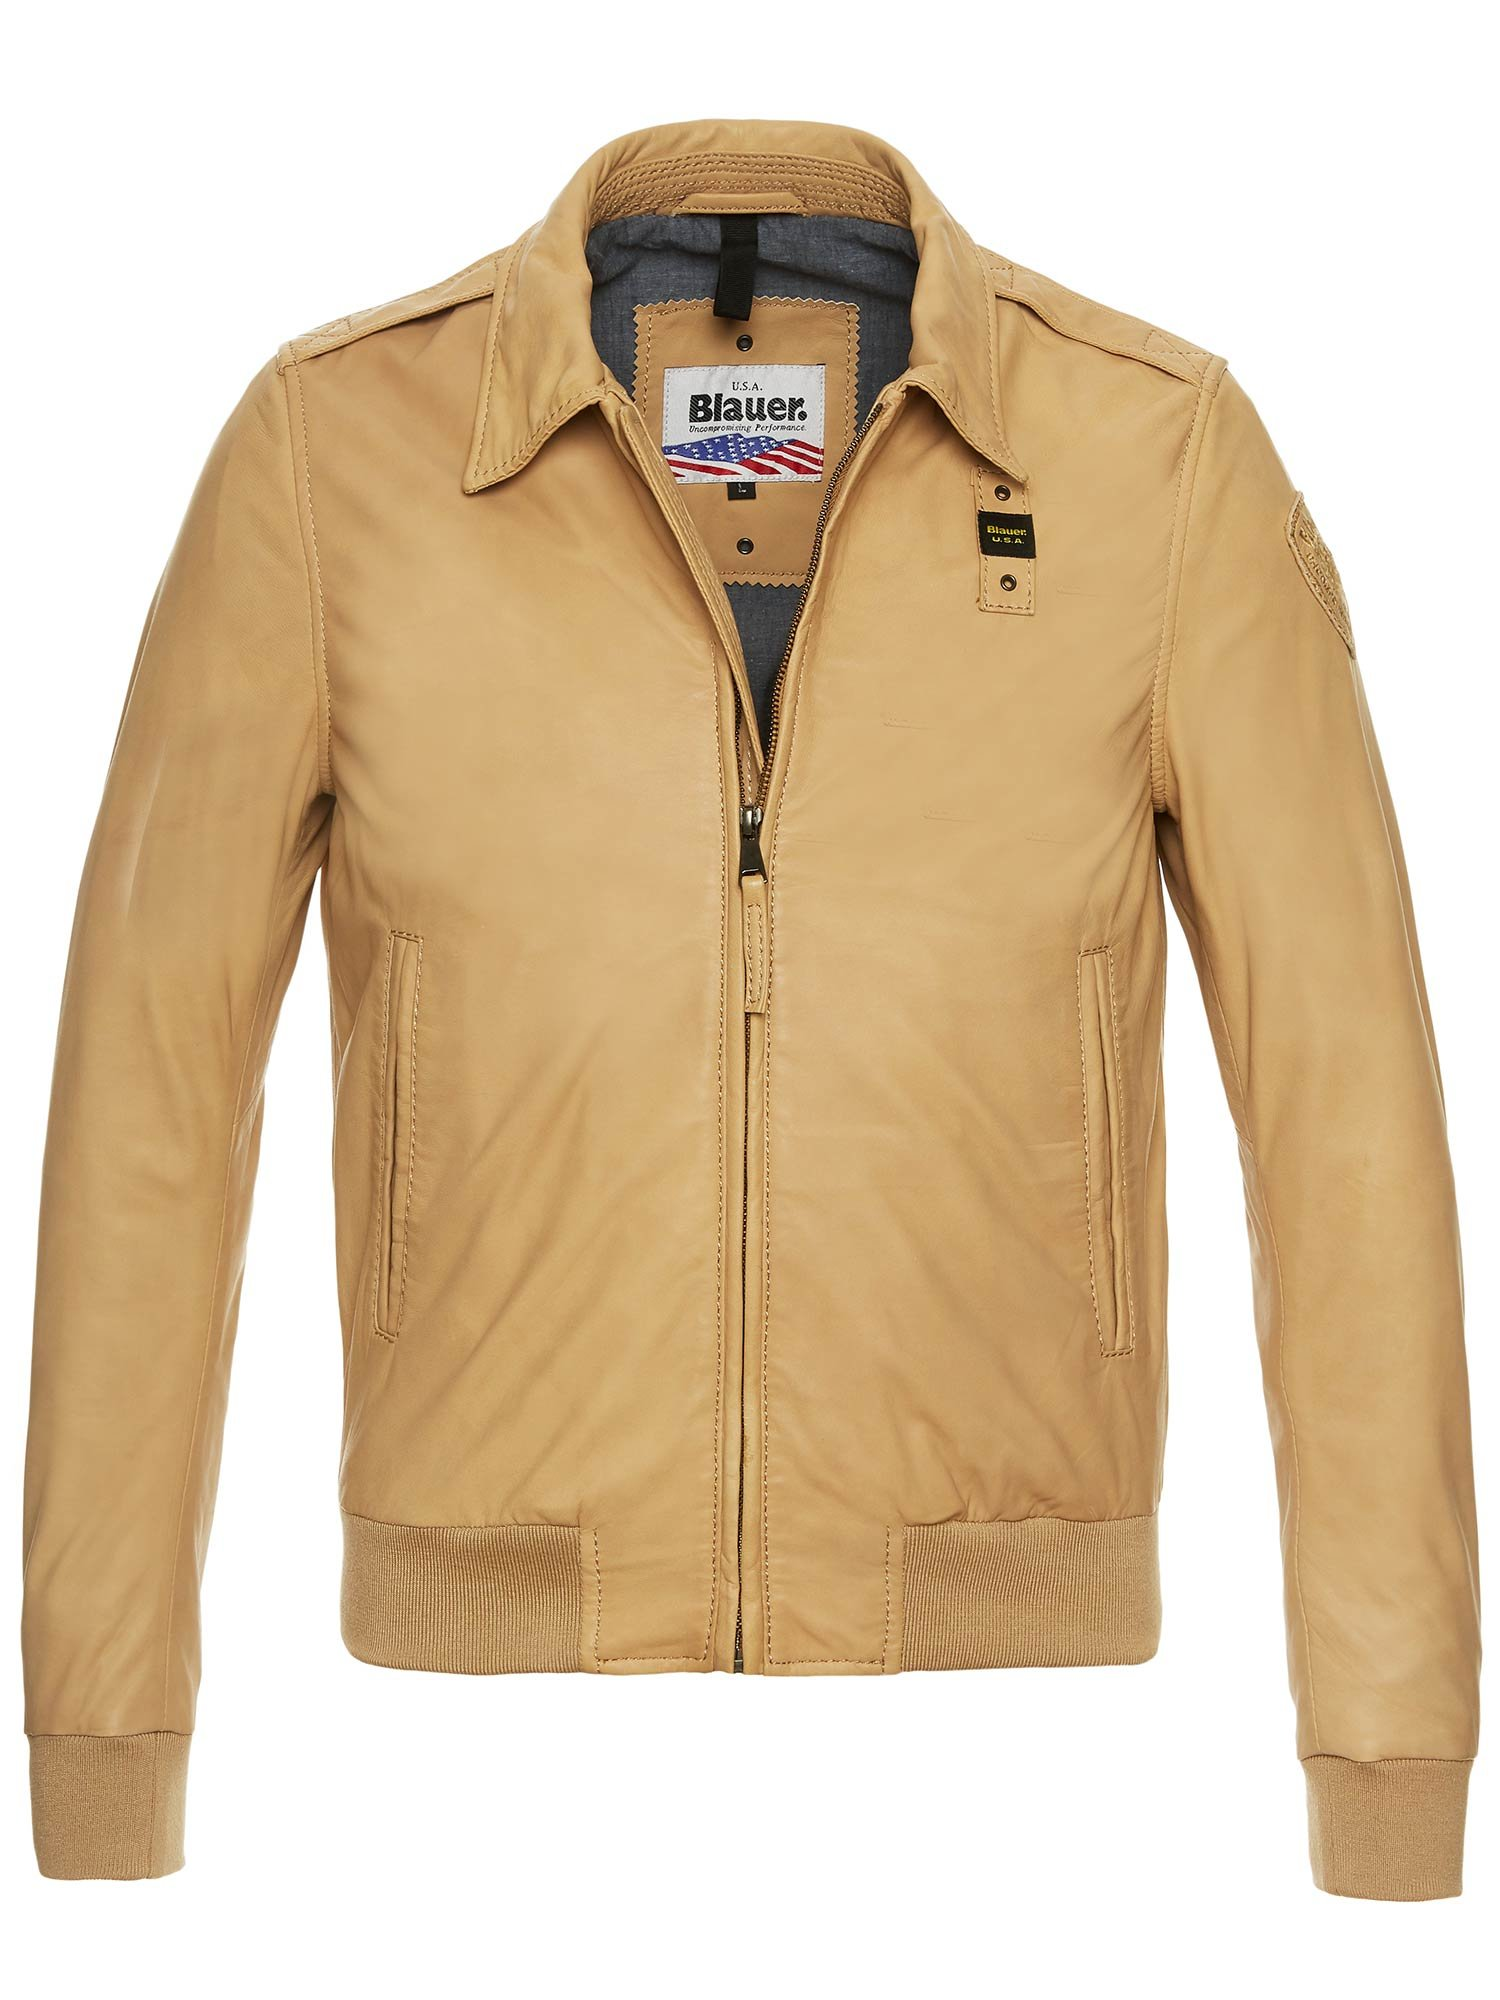 ANDREW BOMBER WITH COLLAR - Biscuit - Blauer